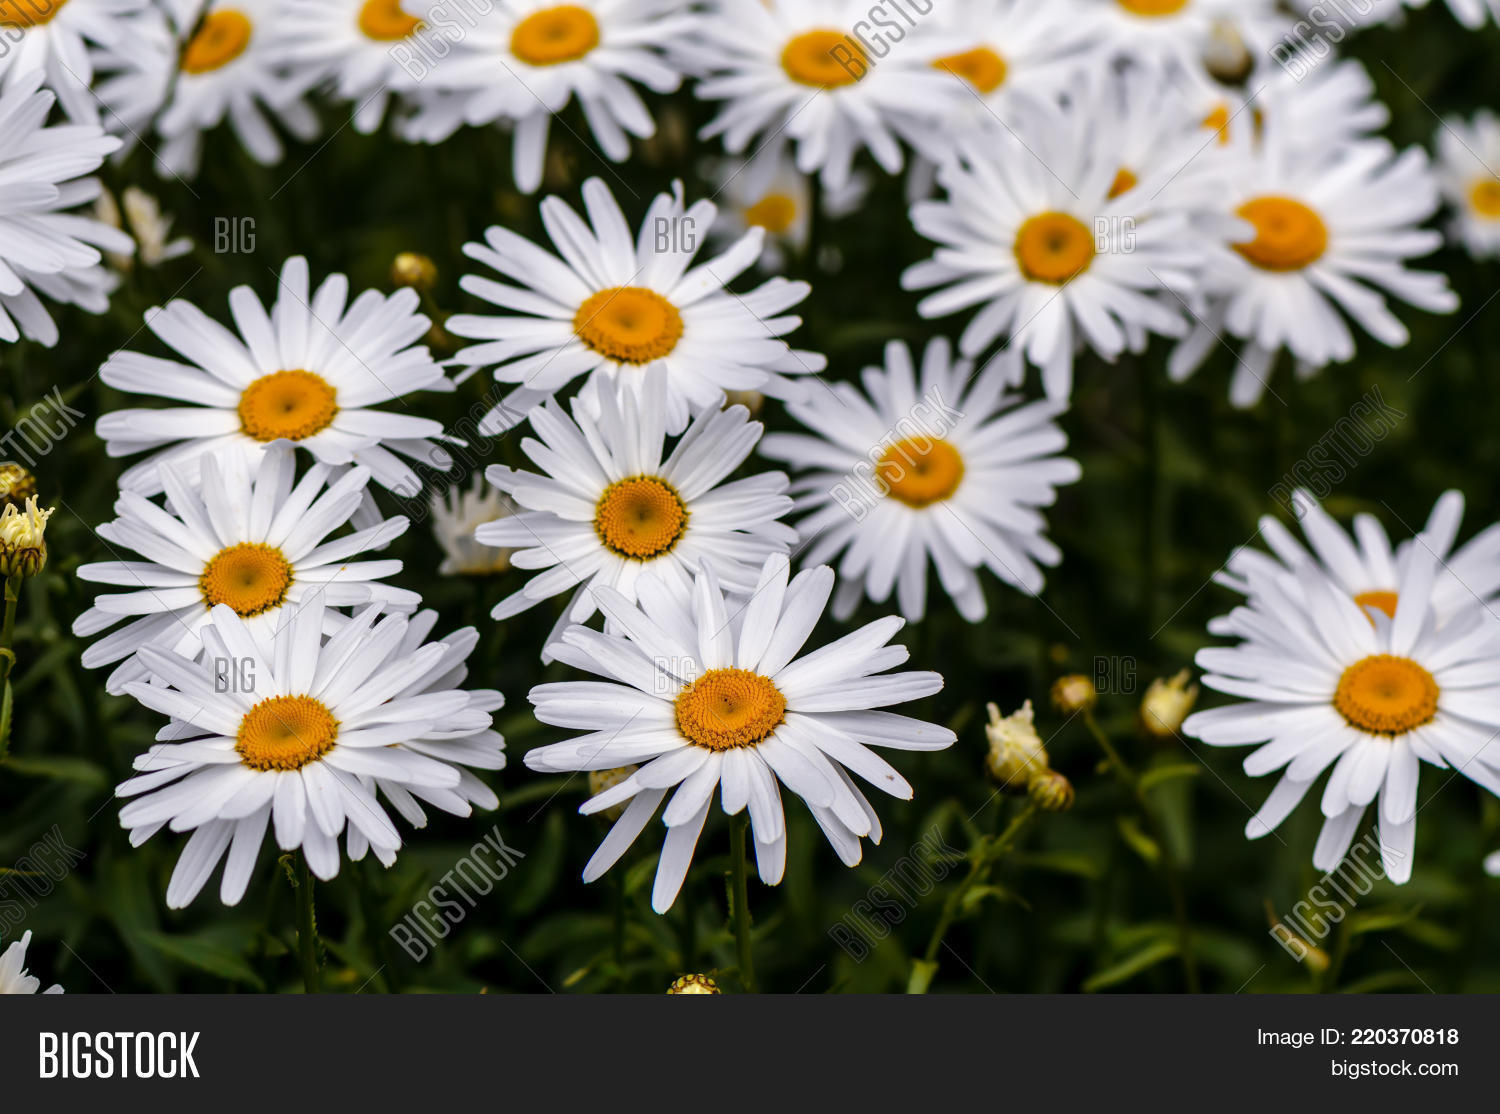 Chamomile flowers long image photo free trial bigstock chamomile flowers with long white petals and a yellow center in the center on the green mightylinksfo